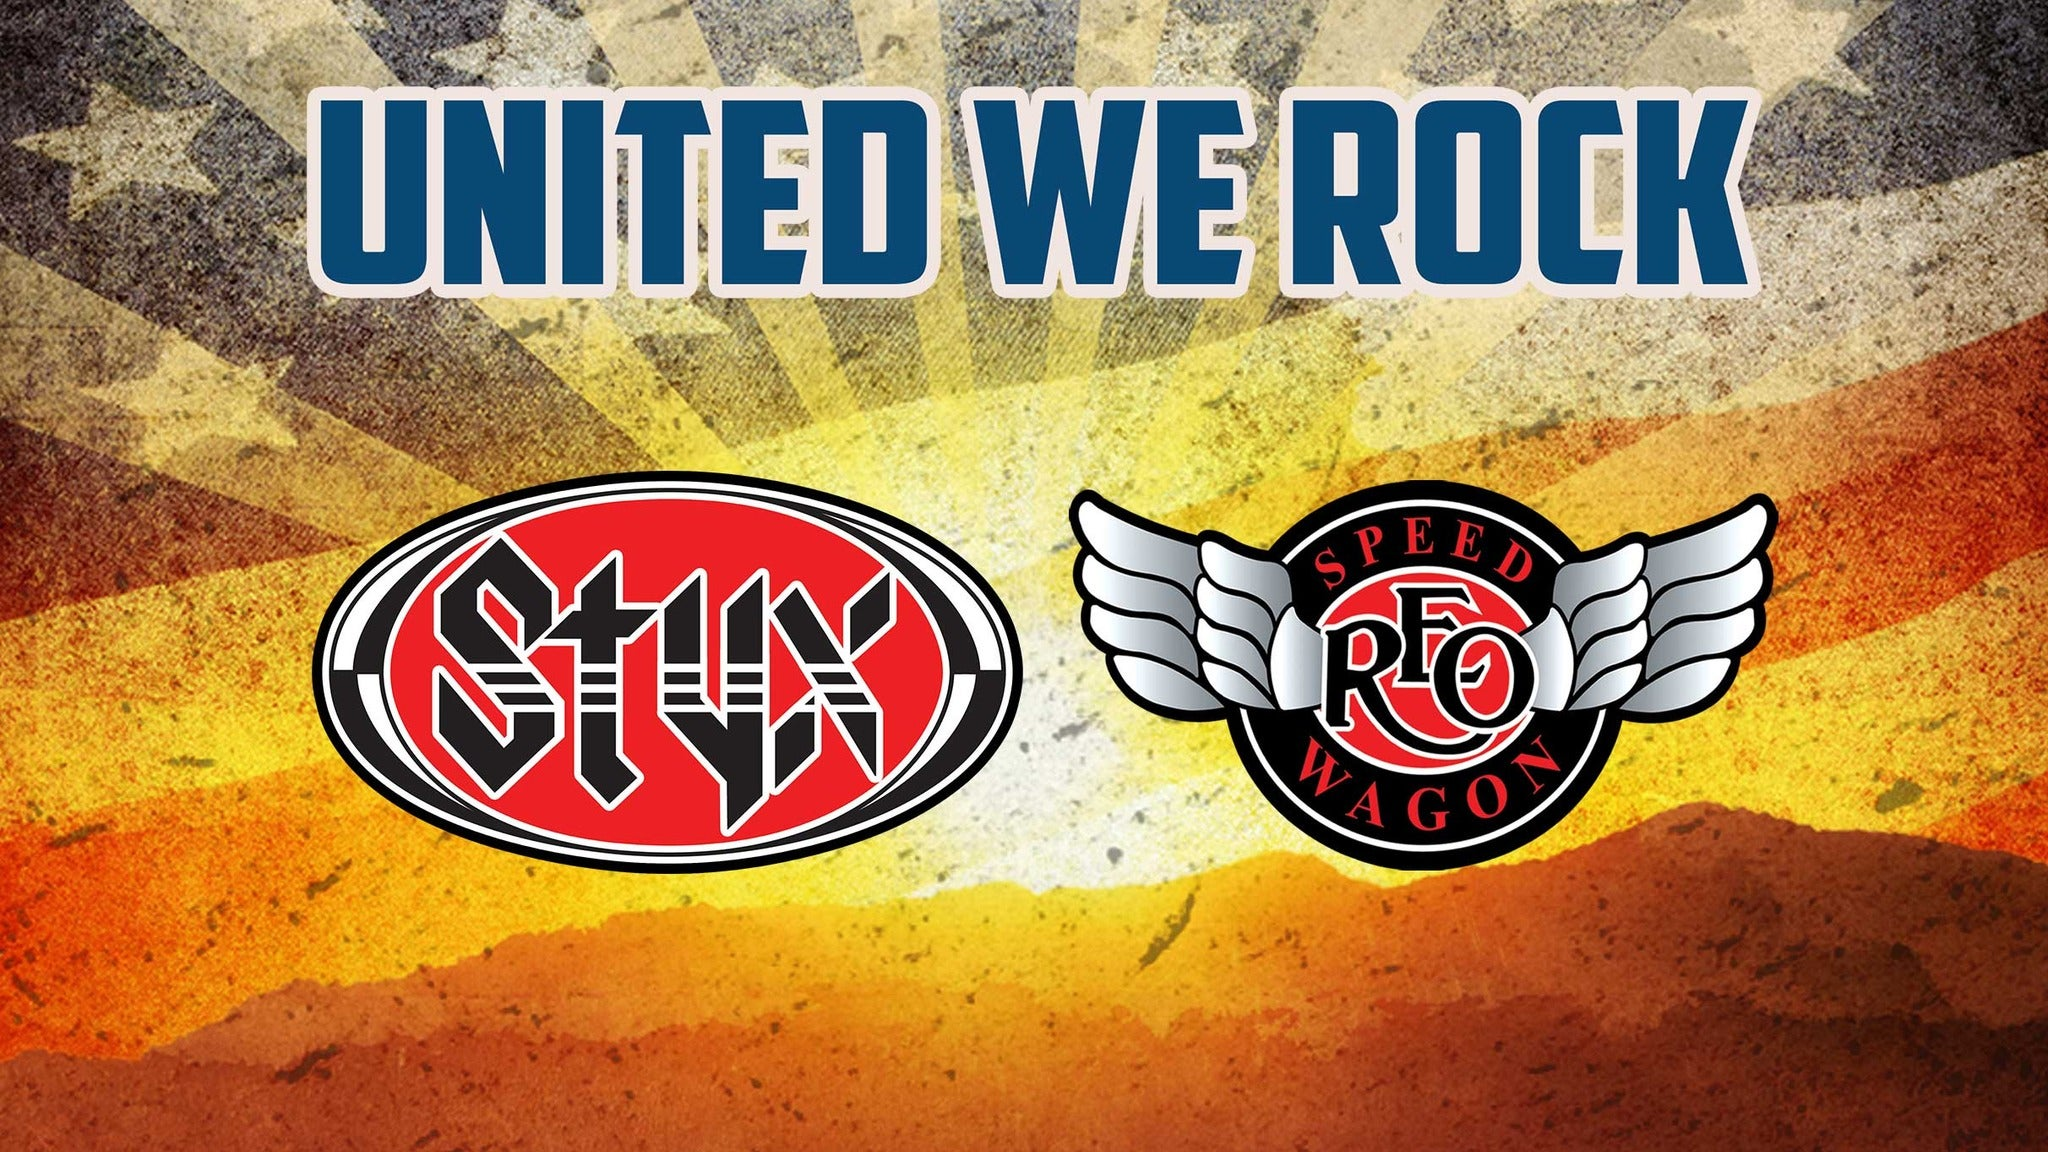 100.1 WJRZ and Magic 98.3 Presents United We Rock Tour 2017